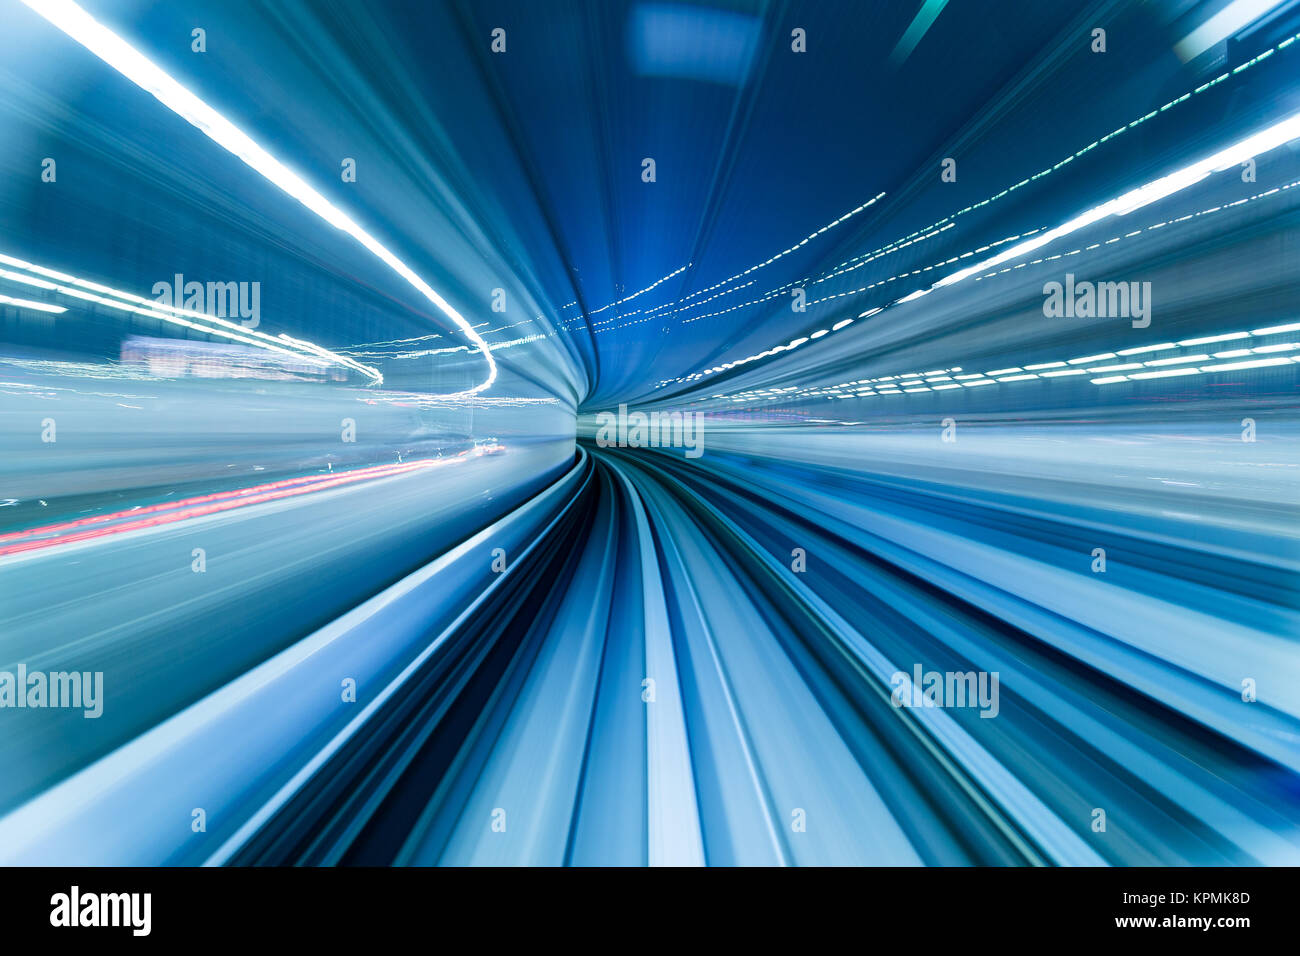 Glow Worm Tunnel Stock Photos & Glow Worm Tunnel Stock Images - Alamy